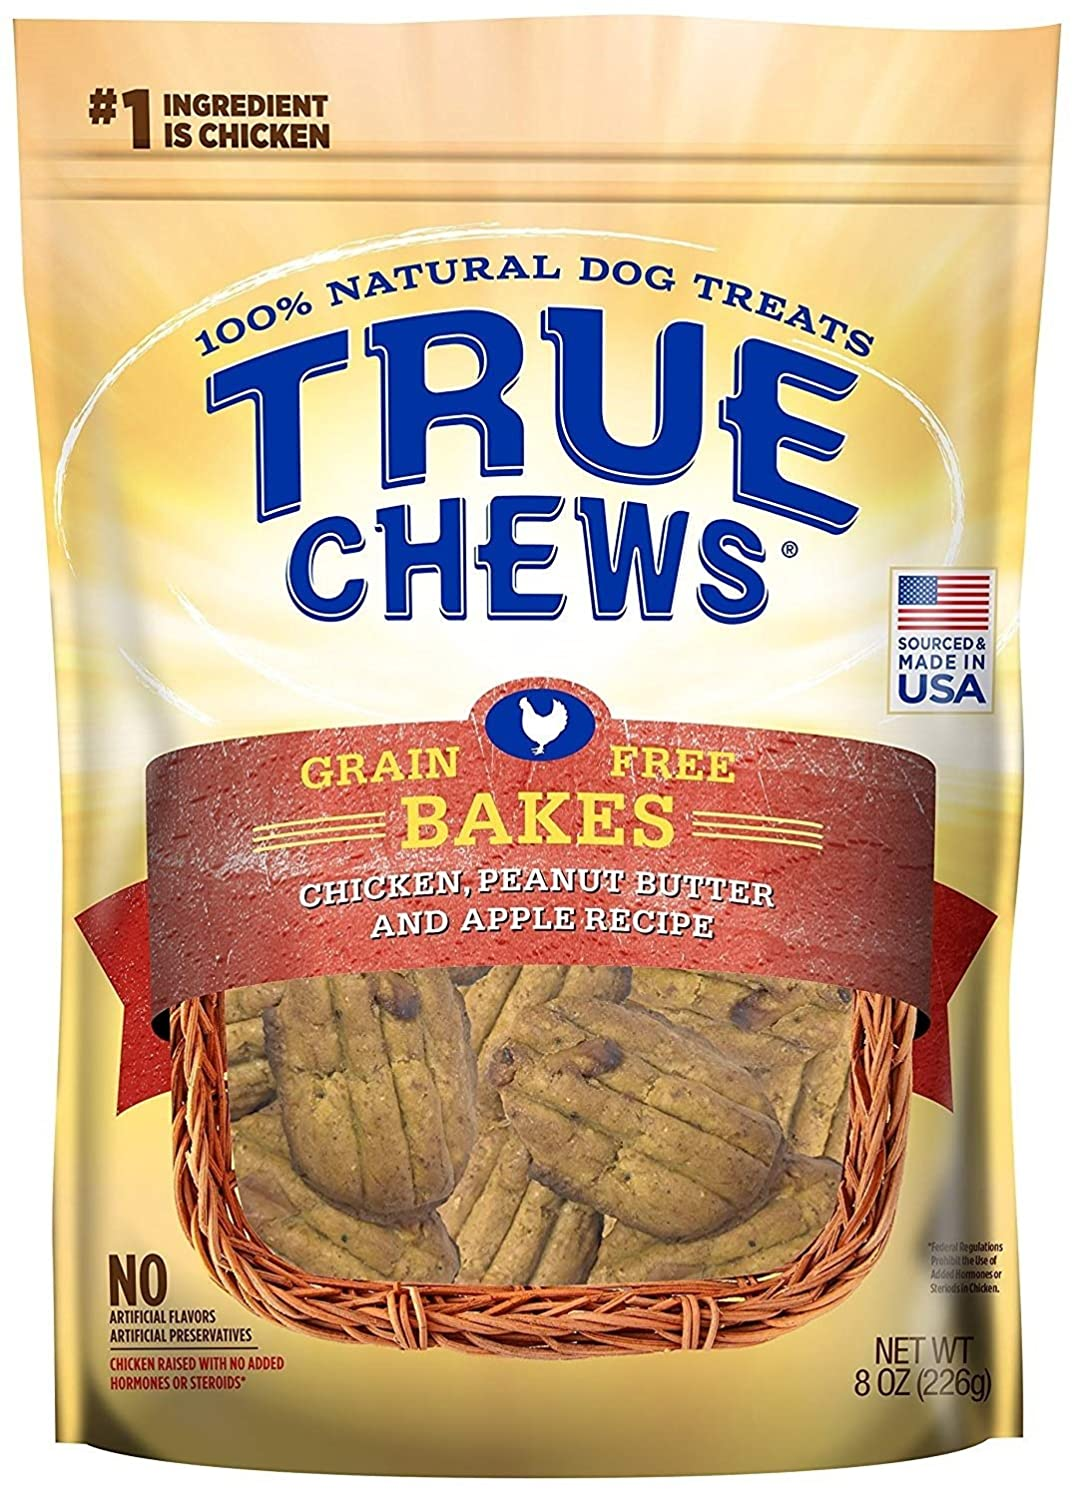 True Chews Dog Treats Premium GF Bakes Chicken Peanut Butter Apple Recipe 8 oz Made in USA